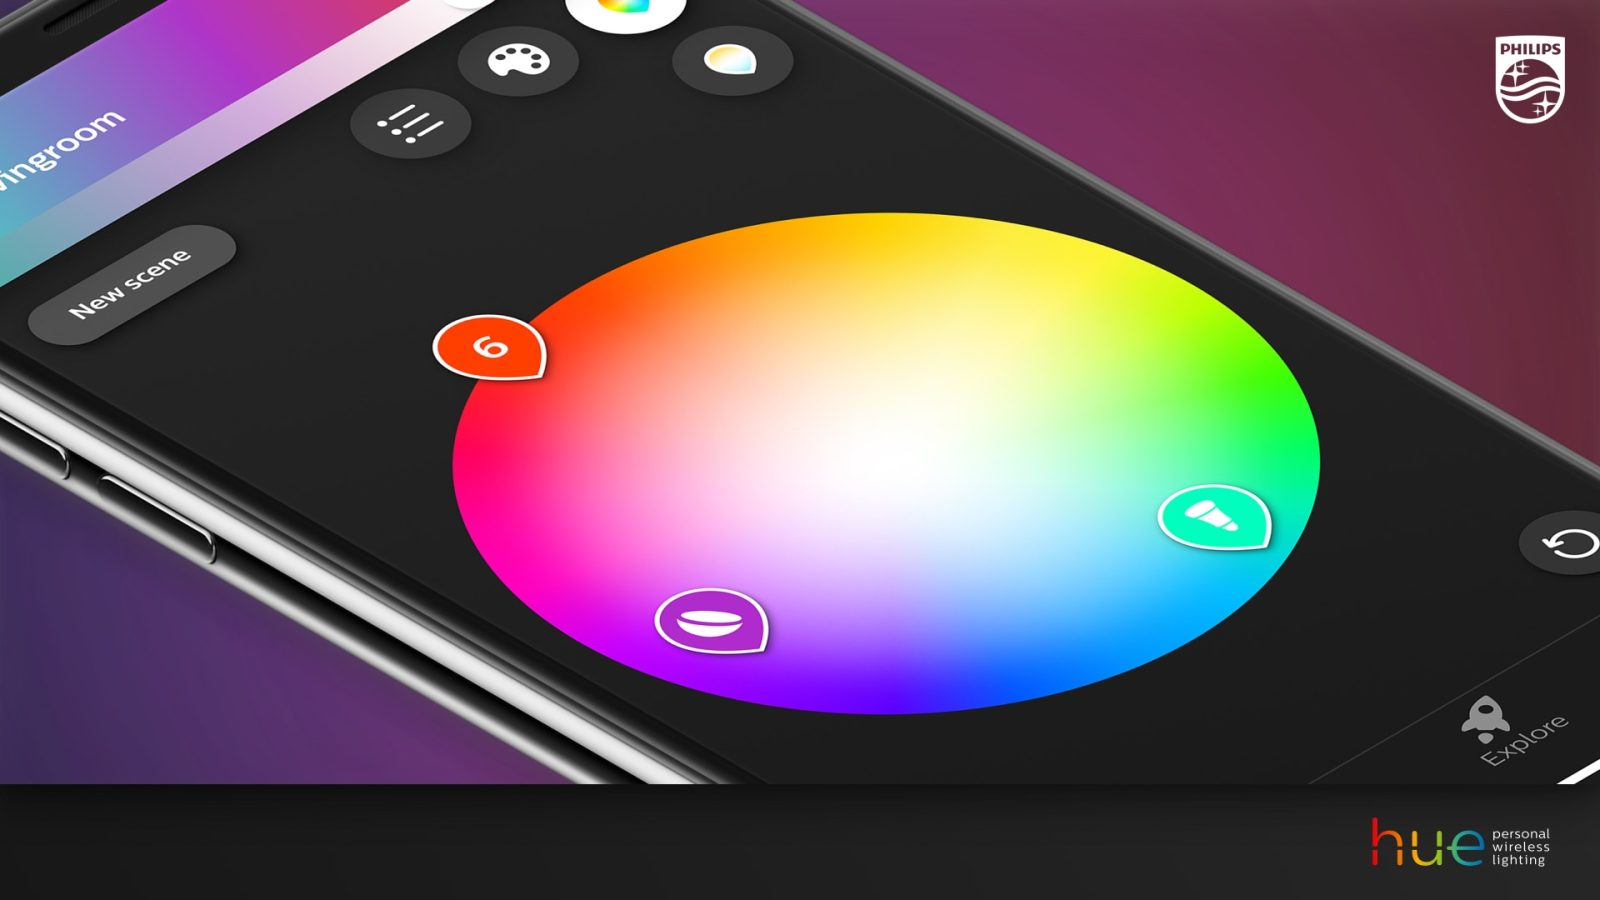 Philips announces Hue 3.0 for iOS, Hue Sync for Mac, outdoor lighting coming soon